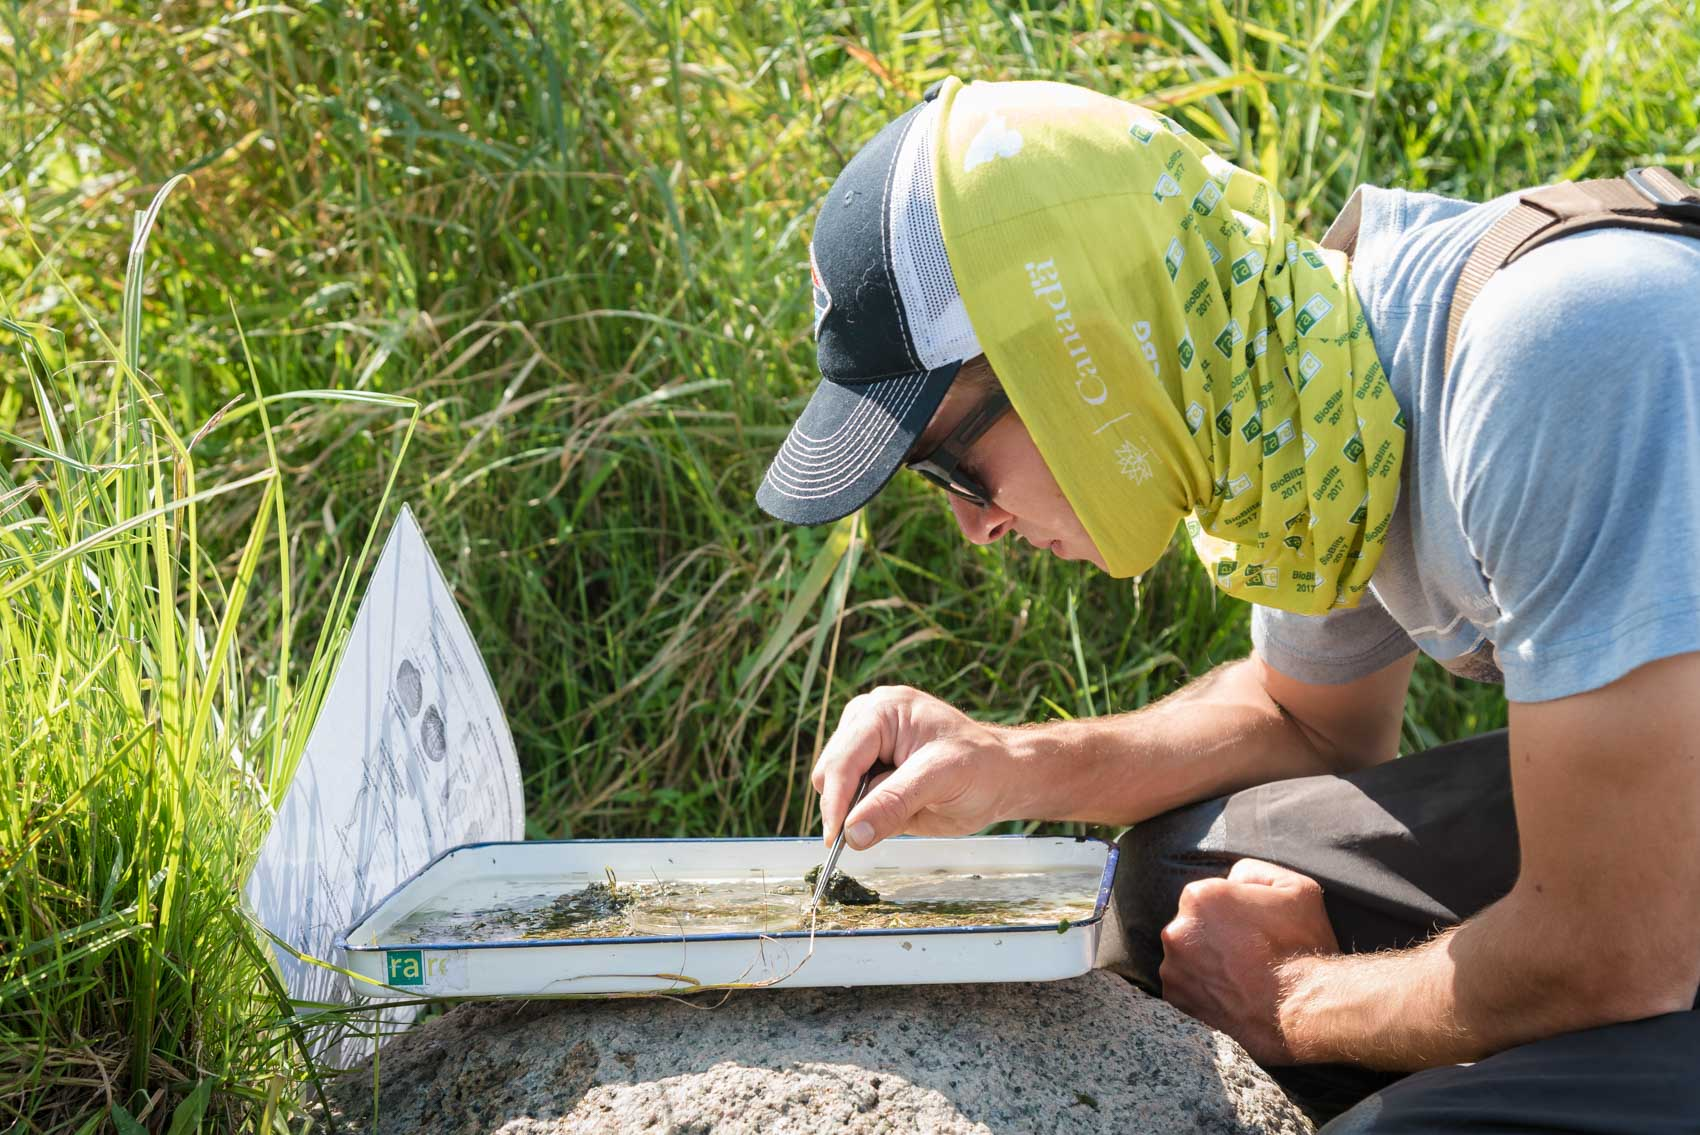 A researcher looking for clams in a tray at a BioBlitz